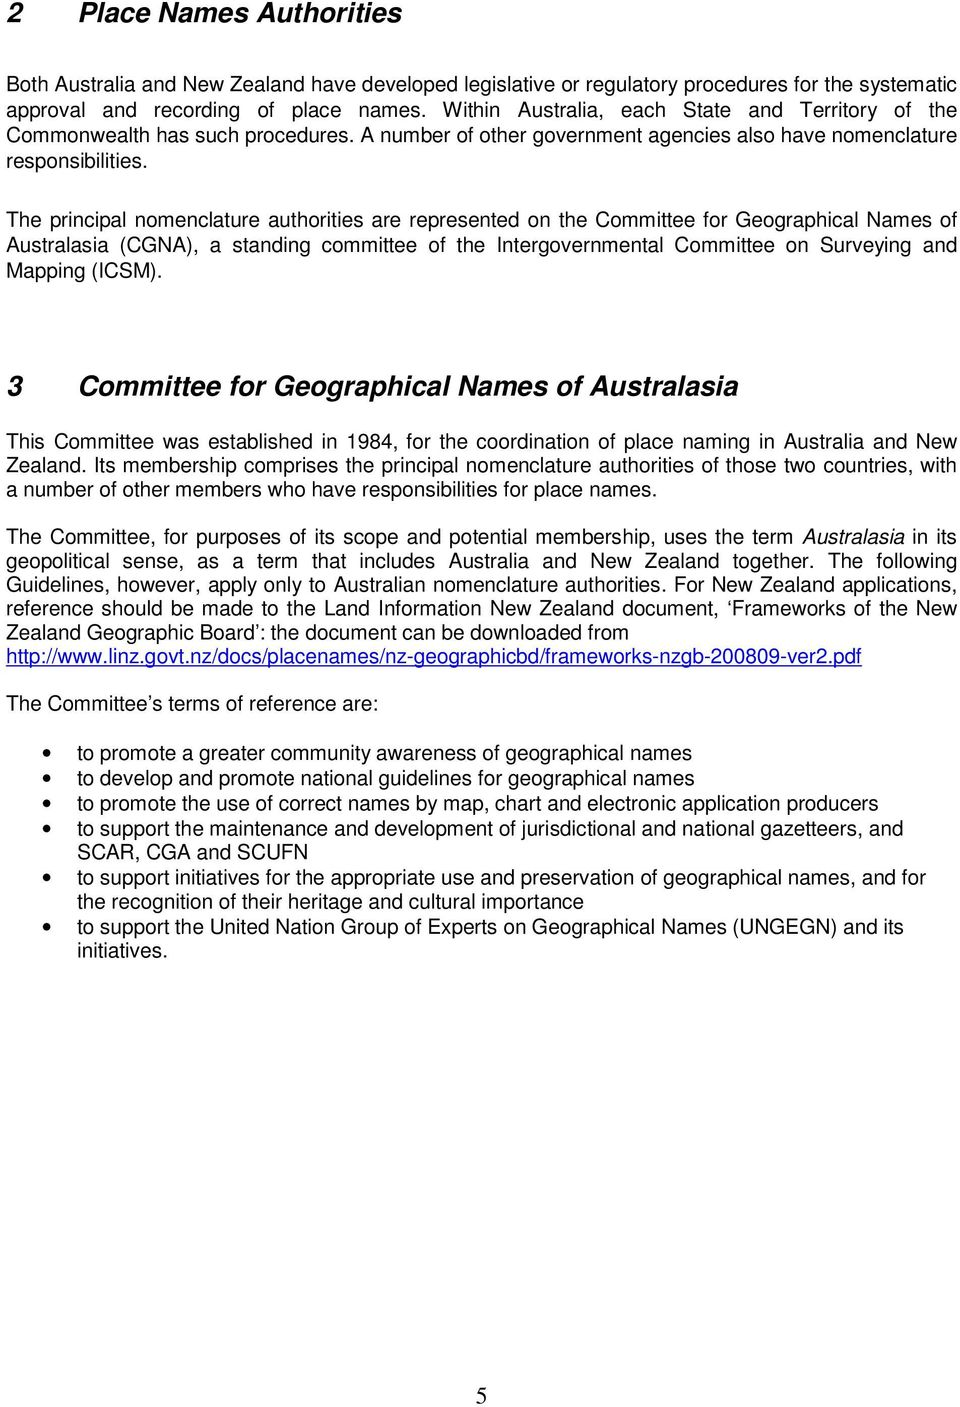 The principal nomenclature authorities are represented on the Committee for Geographical Names of Australasia (CGNA), a standing committee of the Intergovernmental Committee on Surveying and Mapping